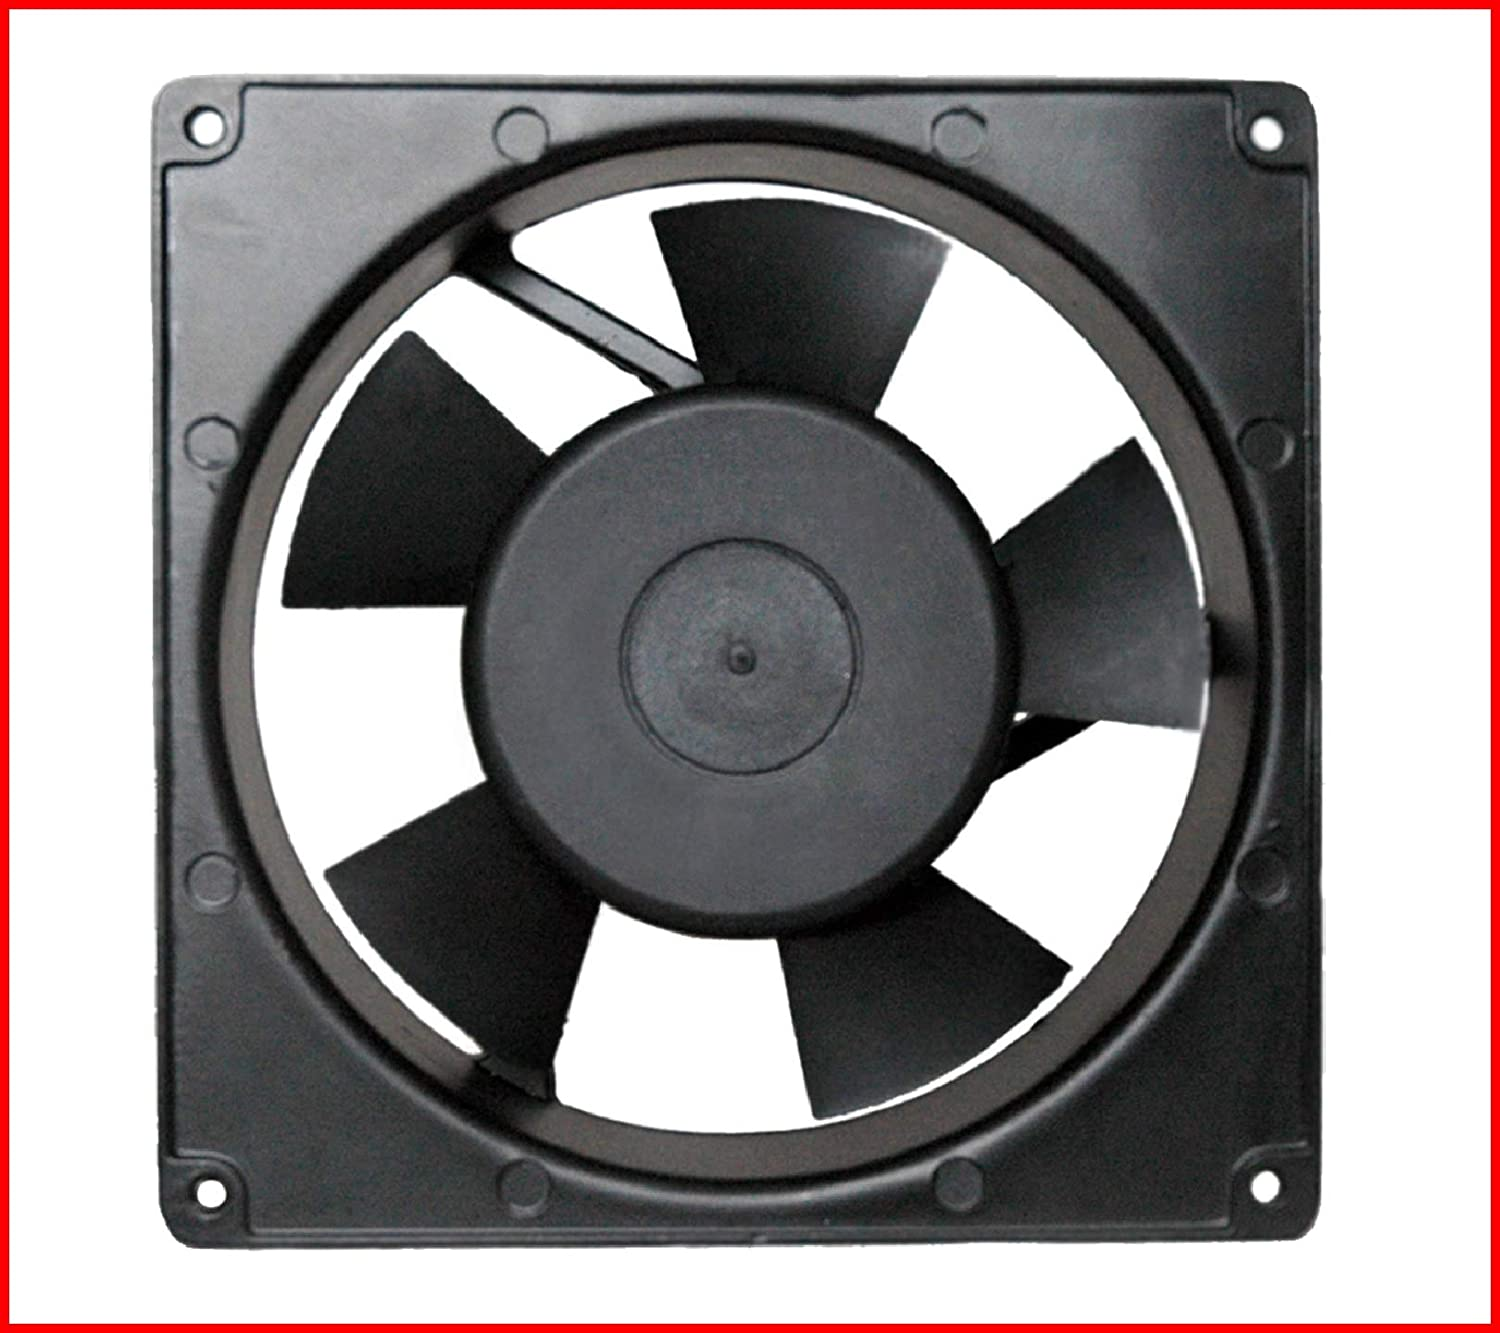 Maa-Ku 220V Aluminium Die-Cast & Plastic Kitchen Exhaust Fan